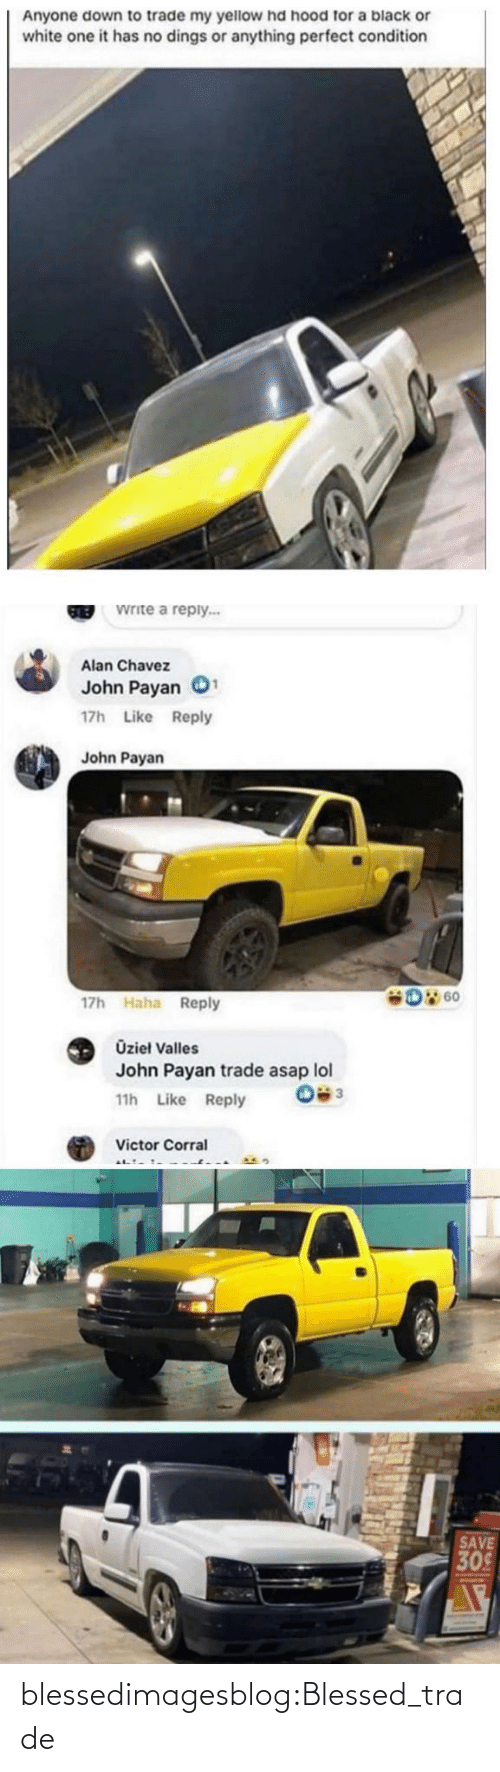 Victor: Anyone down to trade my yellow hd hood for a black or  white one it has no dings or anything perfect condition  Write a reply...  GREB  Alan Chavez  John Payan  17h Like Reply  John Payan  D 60  17h Haha Reply  Üzieł Valles  John Payan trade asap lol  11h Like Reply  Victor Corral  SAVE  309 blessedimagesblog:Blessed_trade